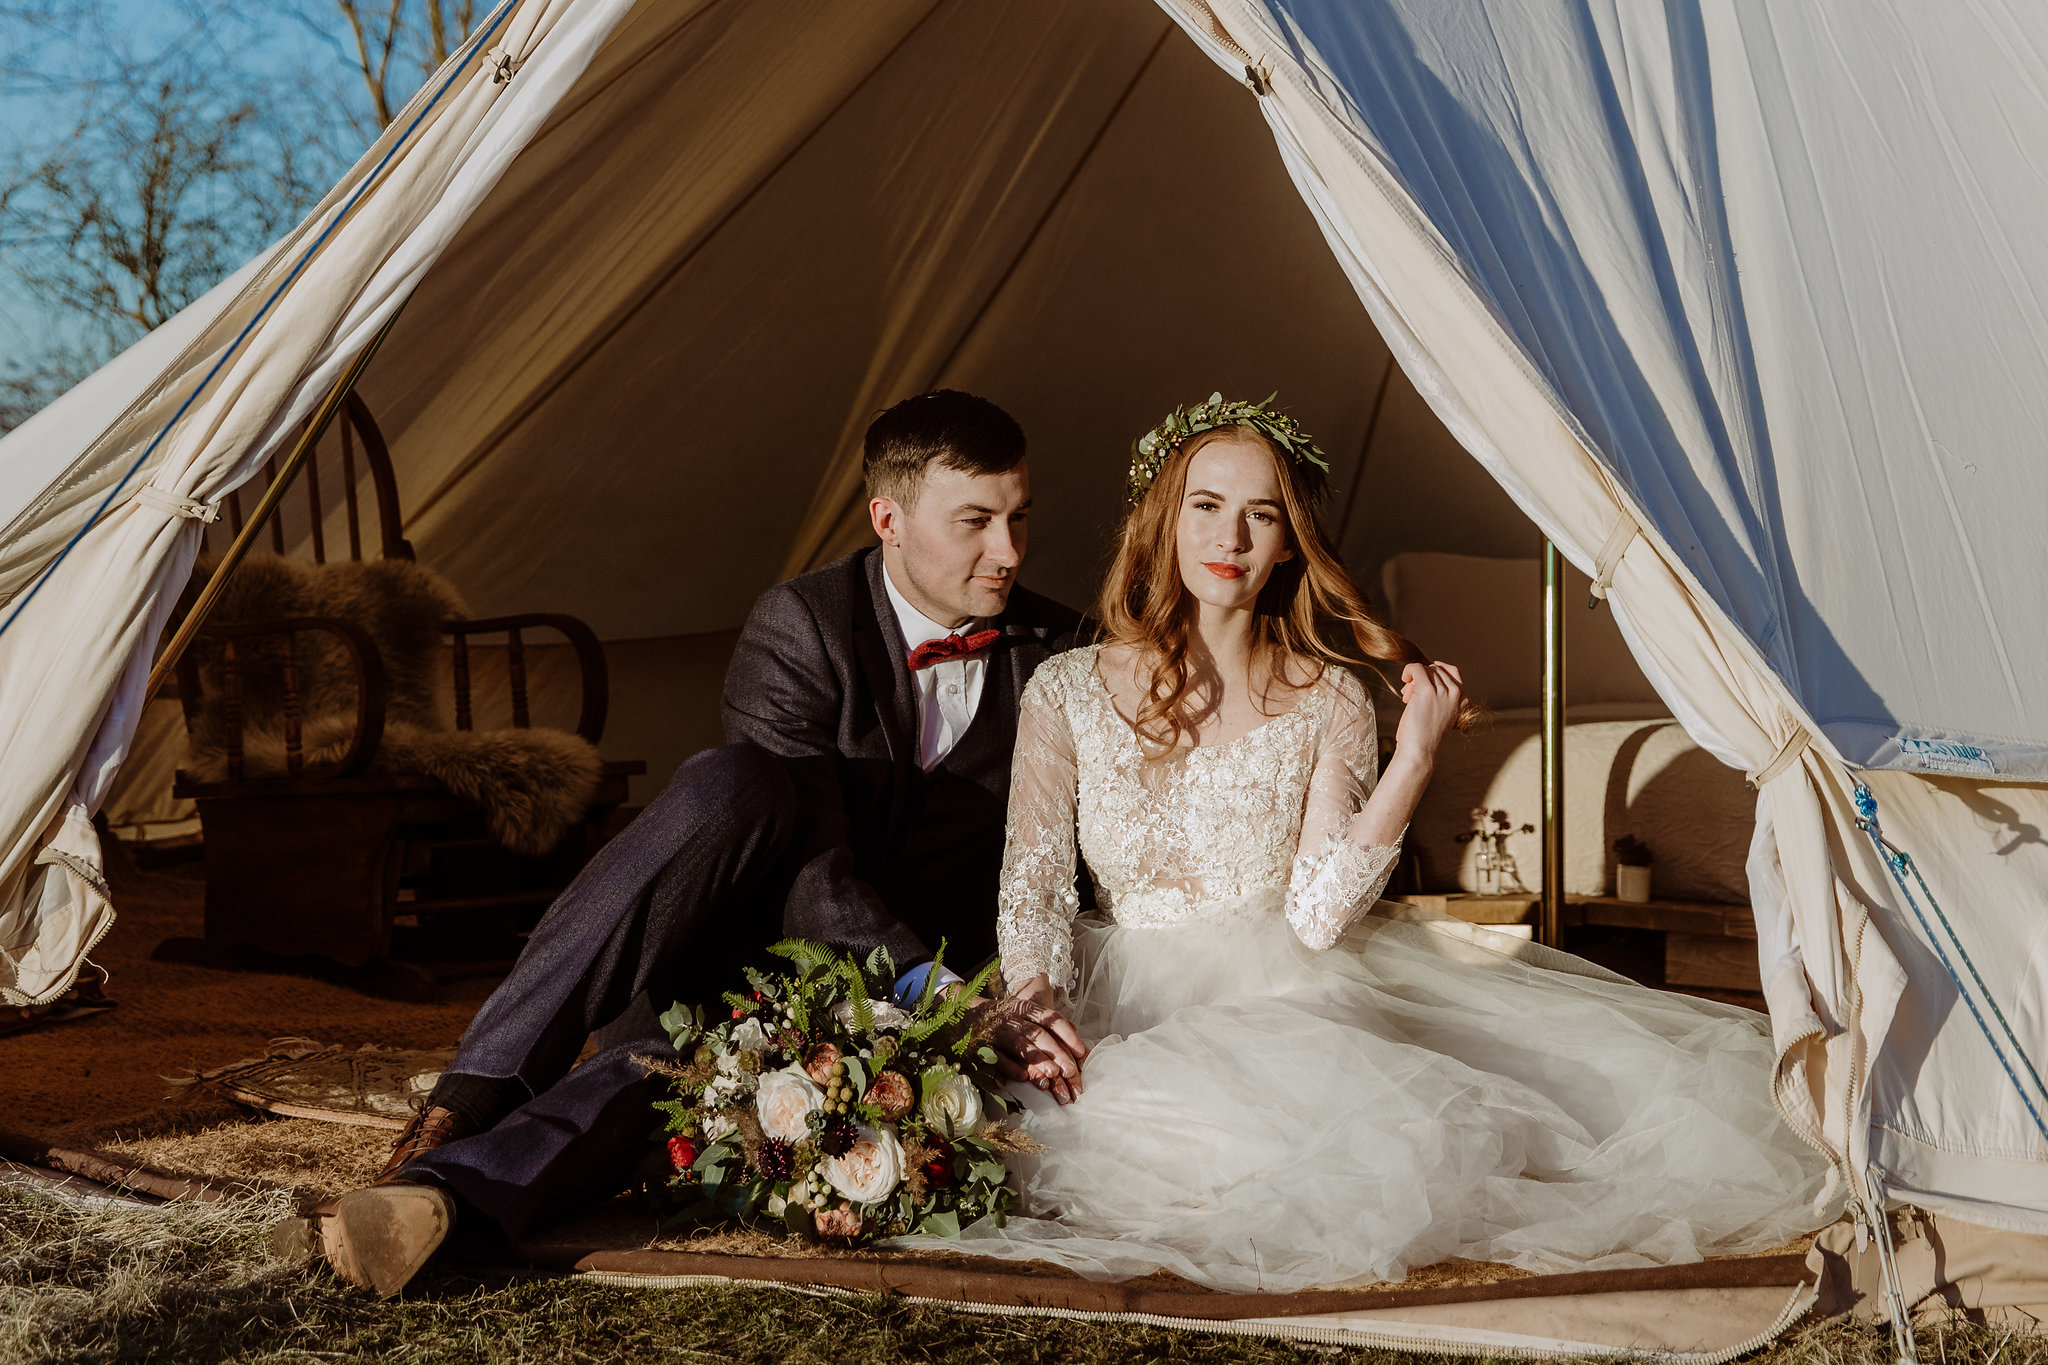 Luxury glampsite wedding